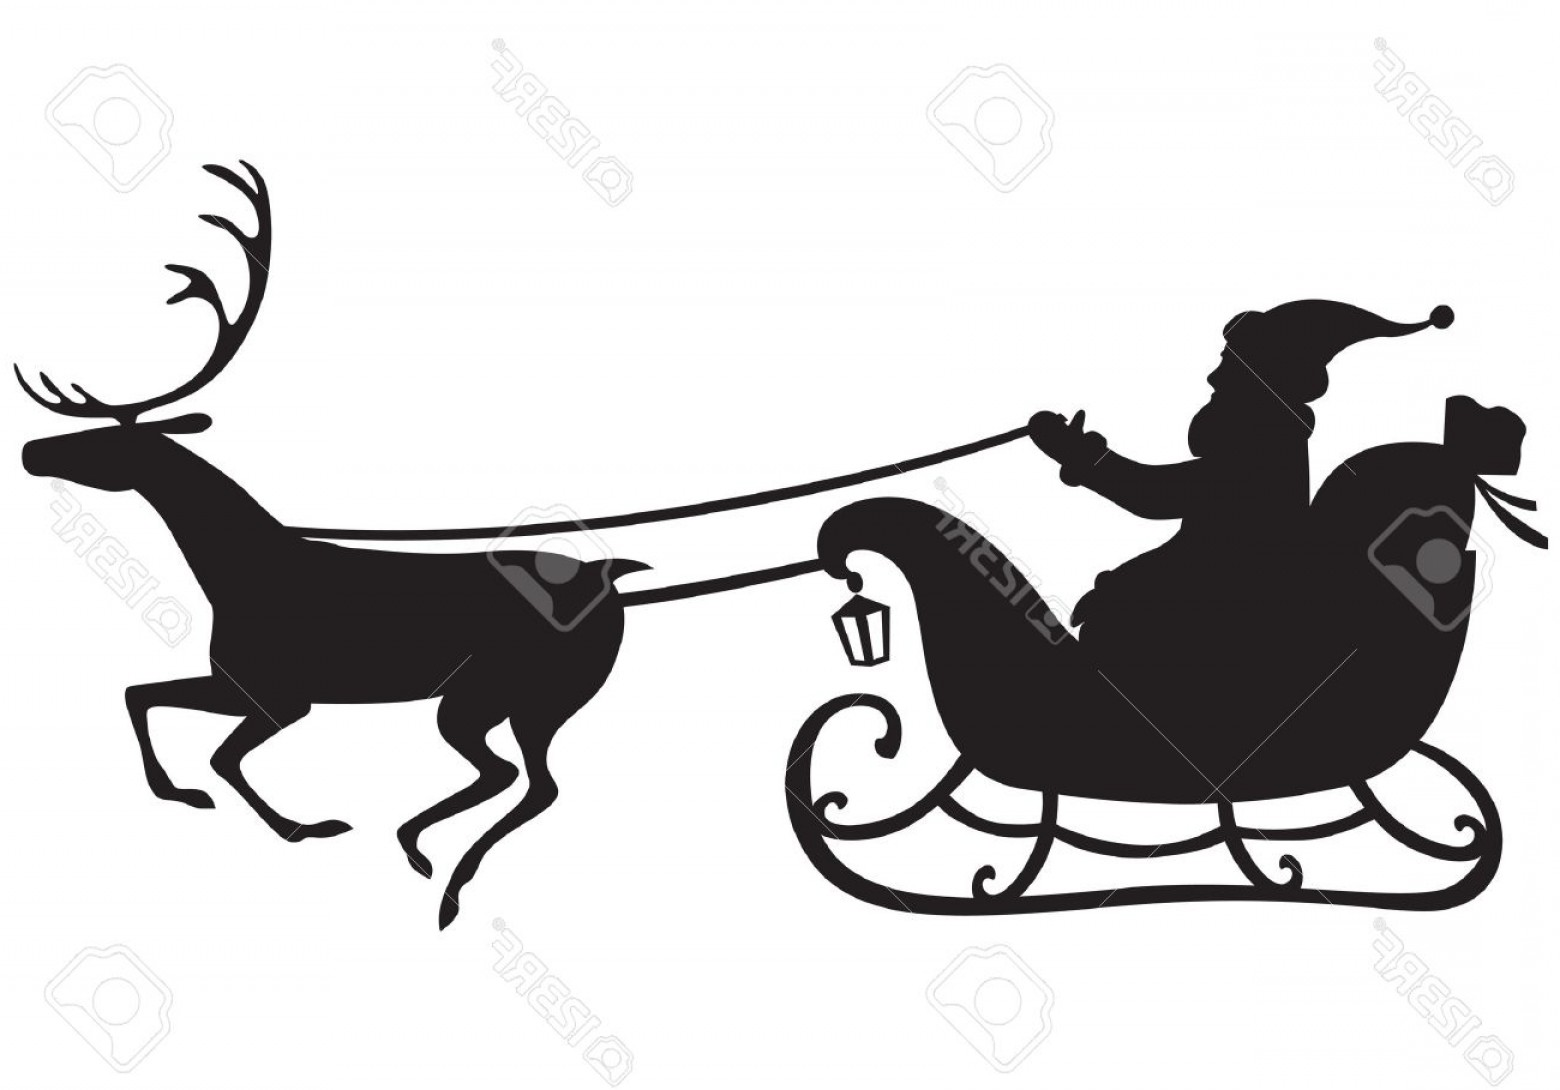 Black Santa Sleigh Vector: Photosilhouette Of Santa Claus Riding A Sleigh Pulled By Reindeer And Carries A Sack Of Gifts